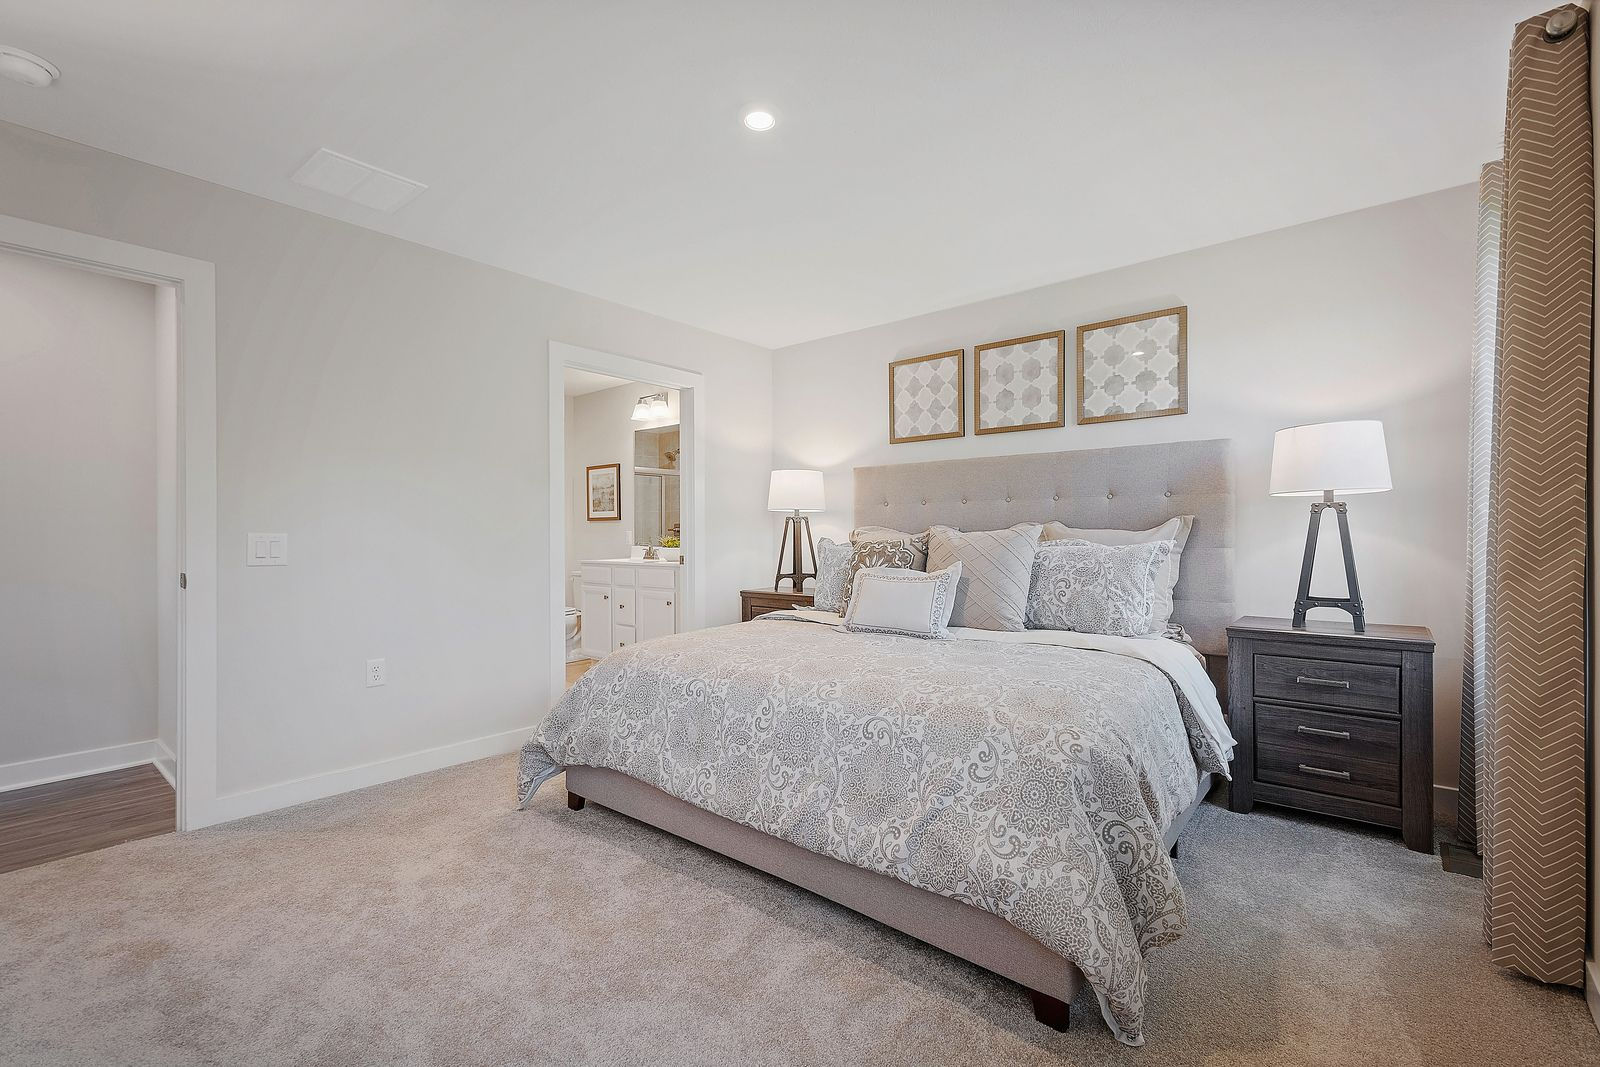 Bedroom featured in the Grand Bahama By Ryan Homes in Philadelphia, PA